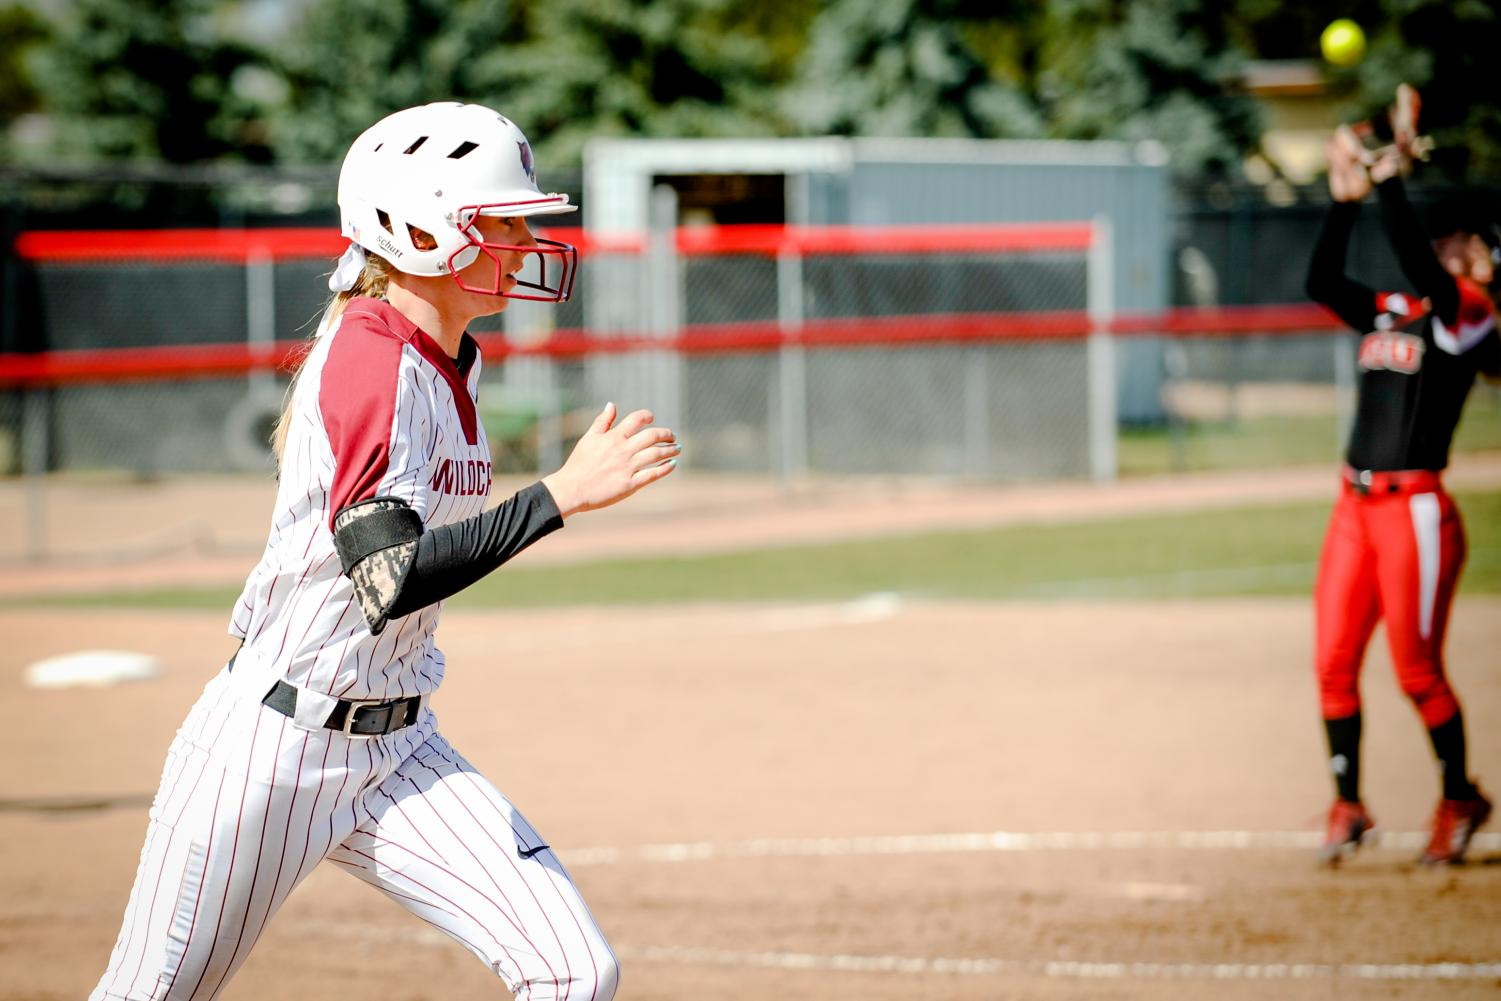 Theresa Moyle, after hittin the ball, runs to first base in a game against Western Oregon University.